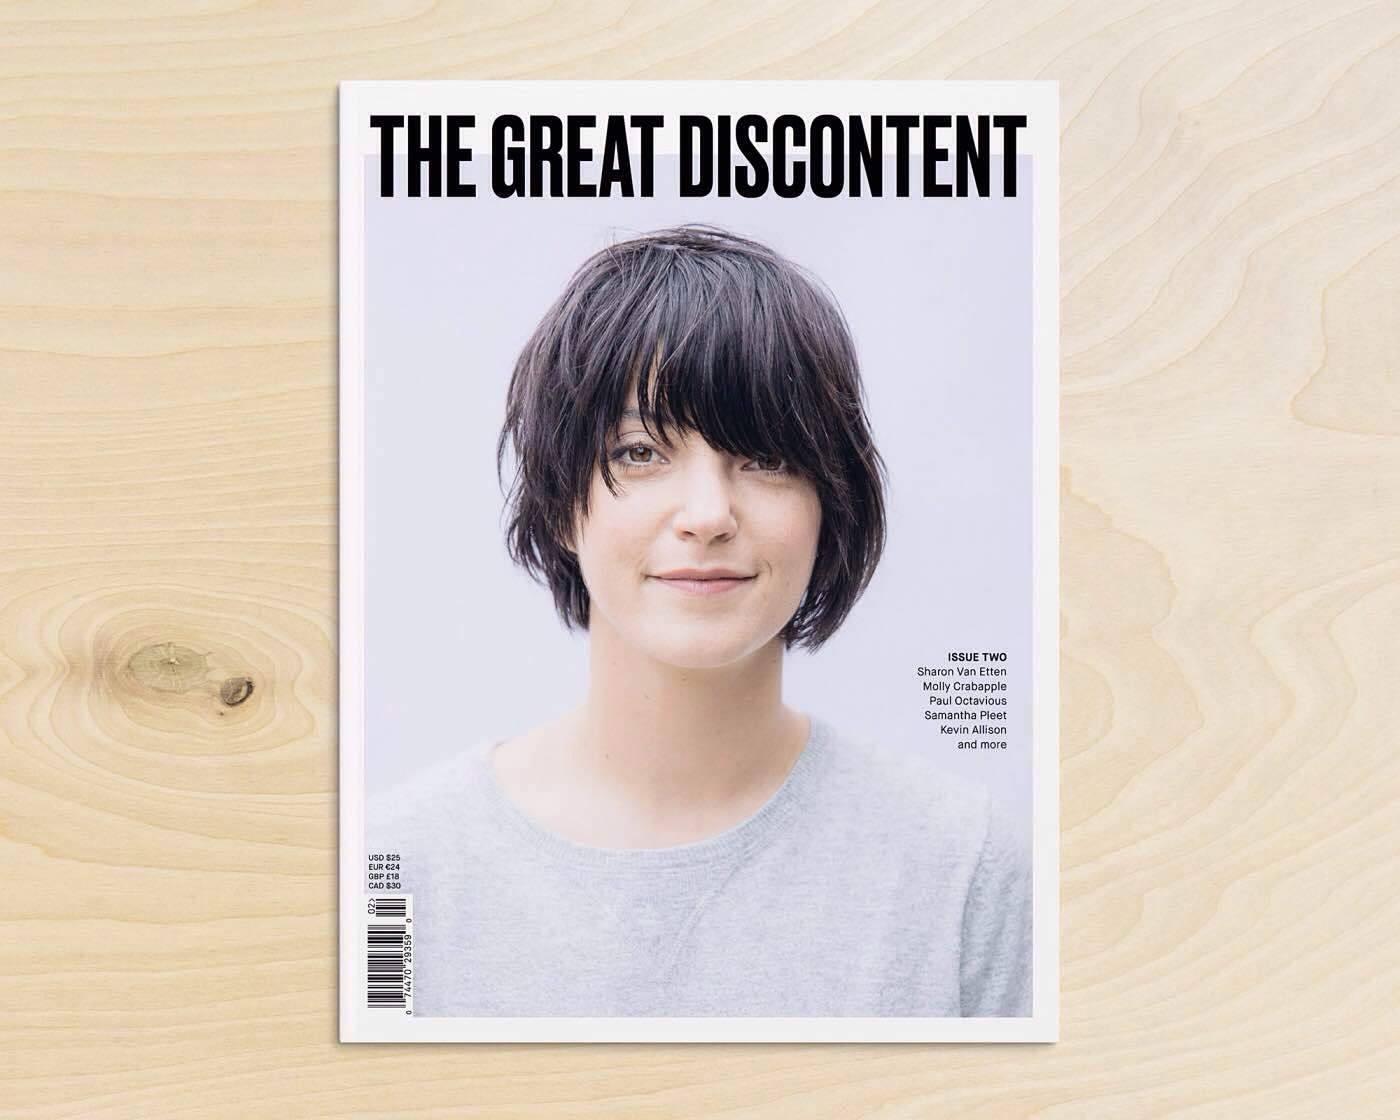 The Great Discontent Magazine. (One digital issue for $15, one print issue for $25, or one of each for $30)